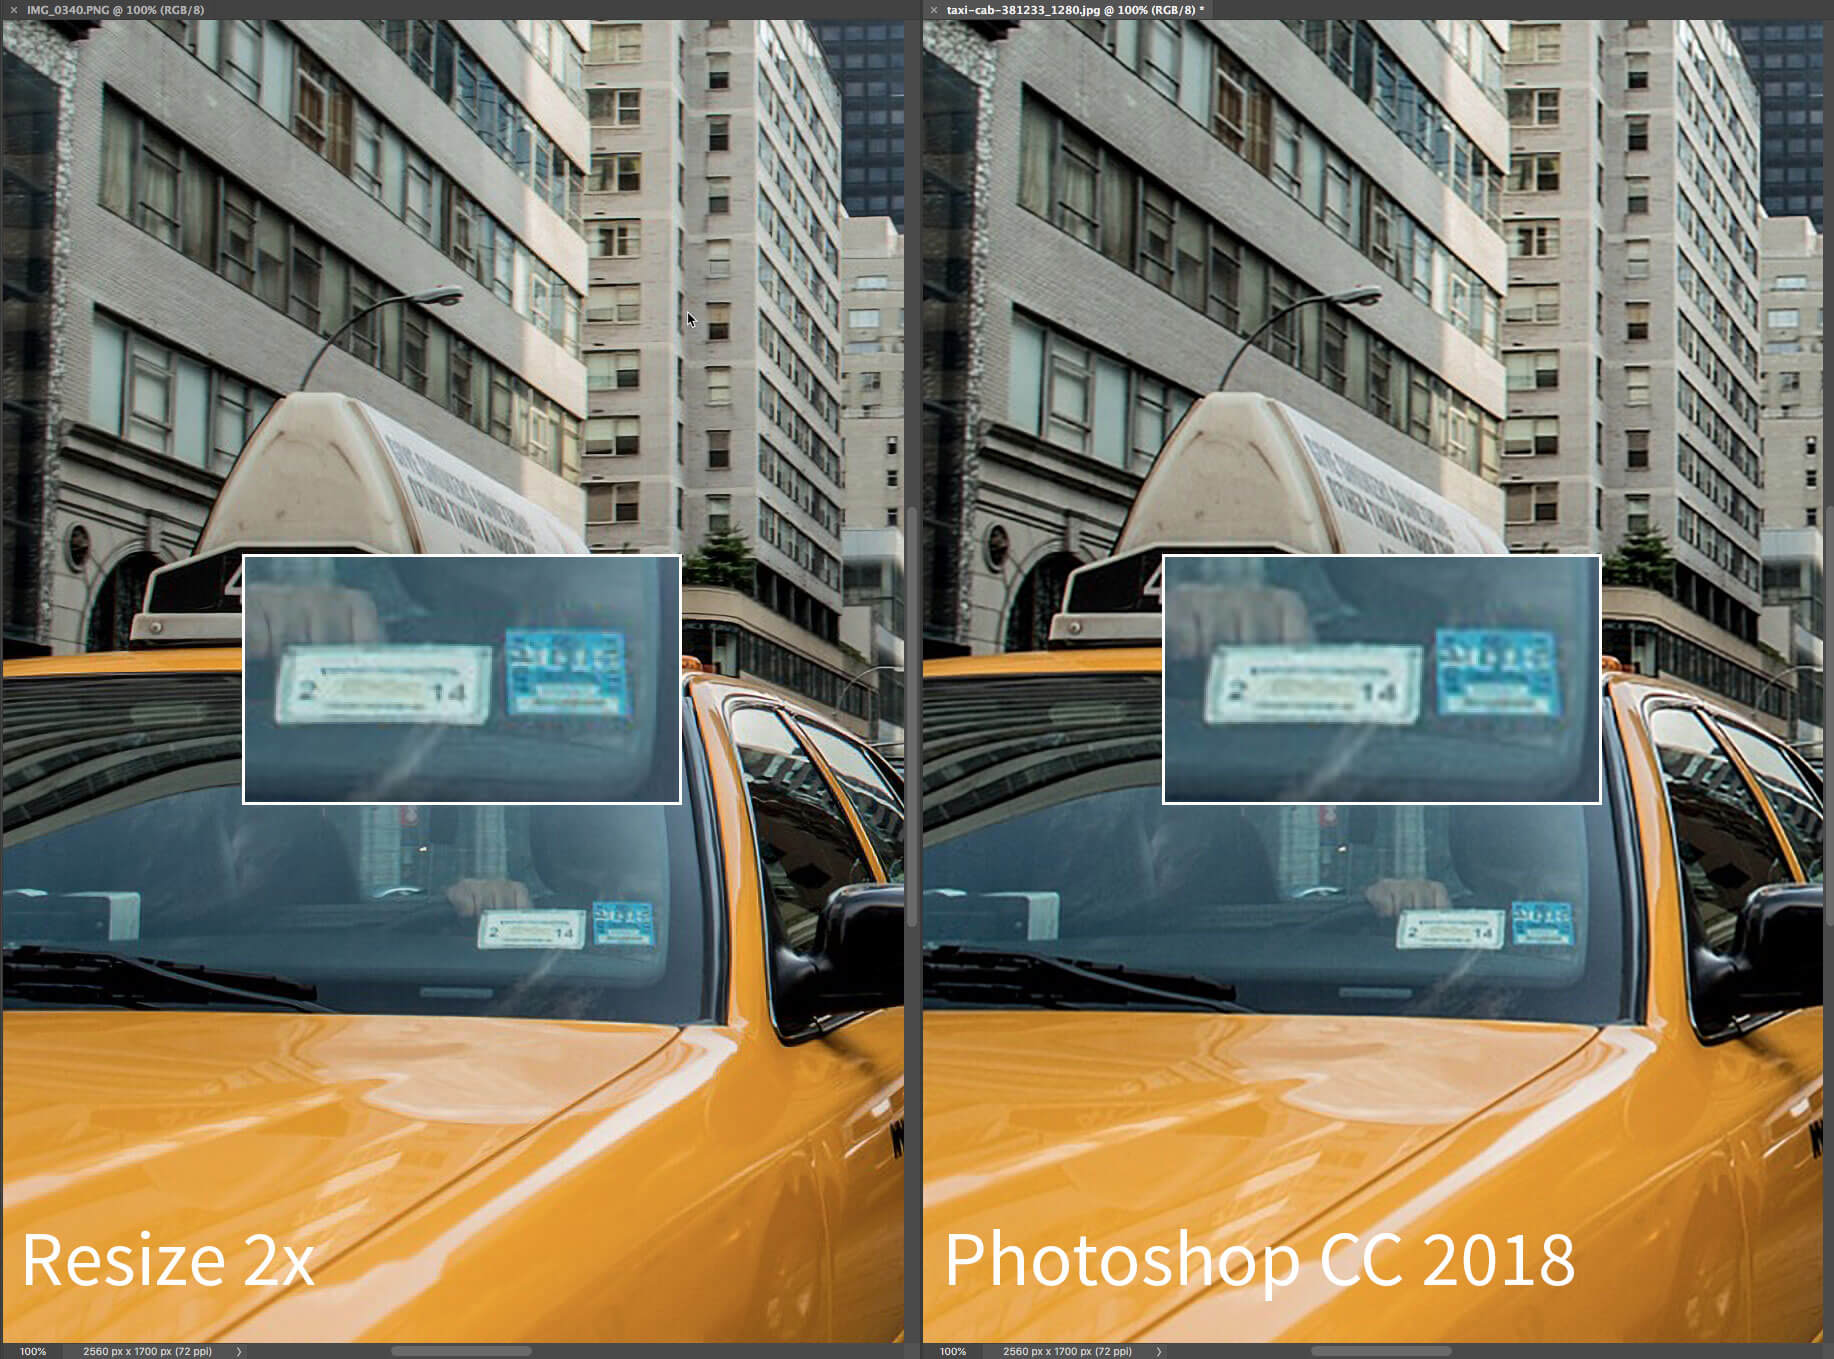 An image showing a side by side quality comparison between Resize 2x and Photoshop CC 2018